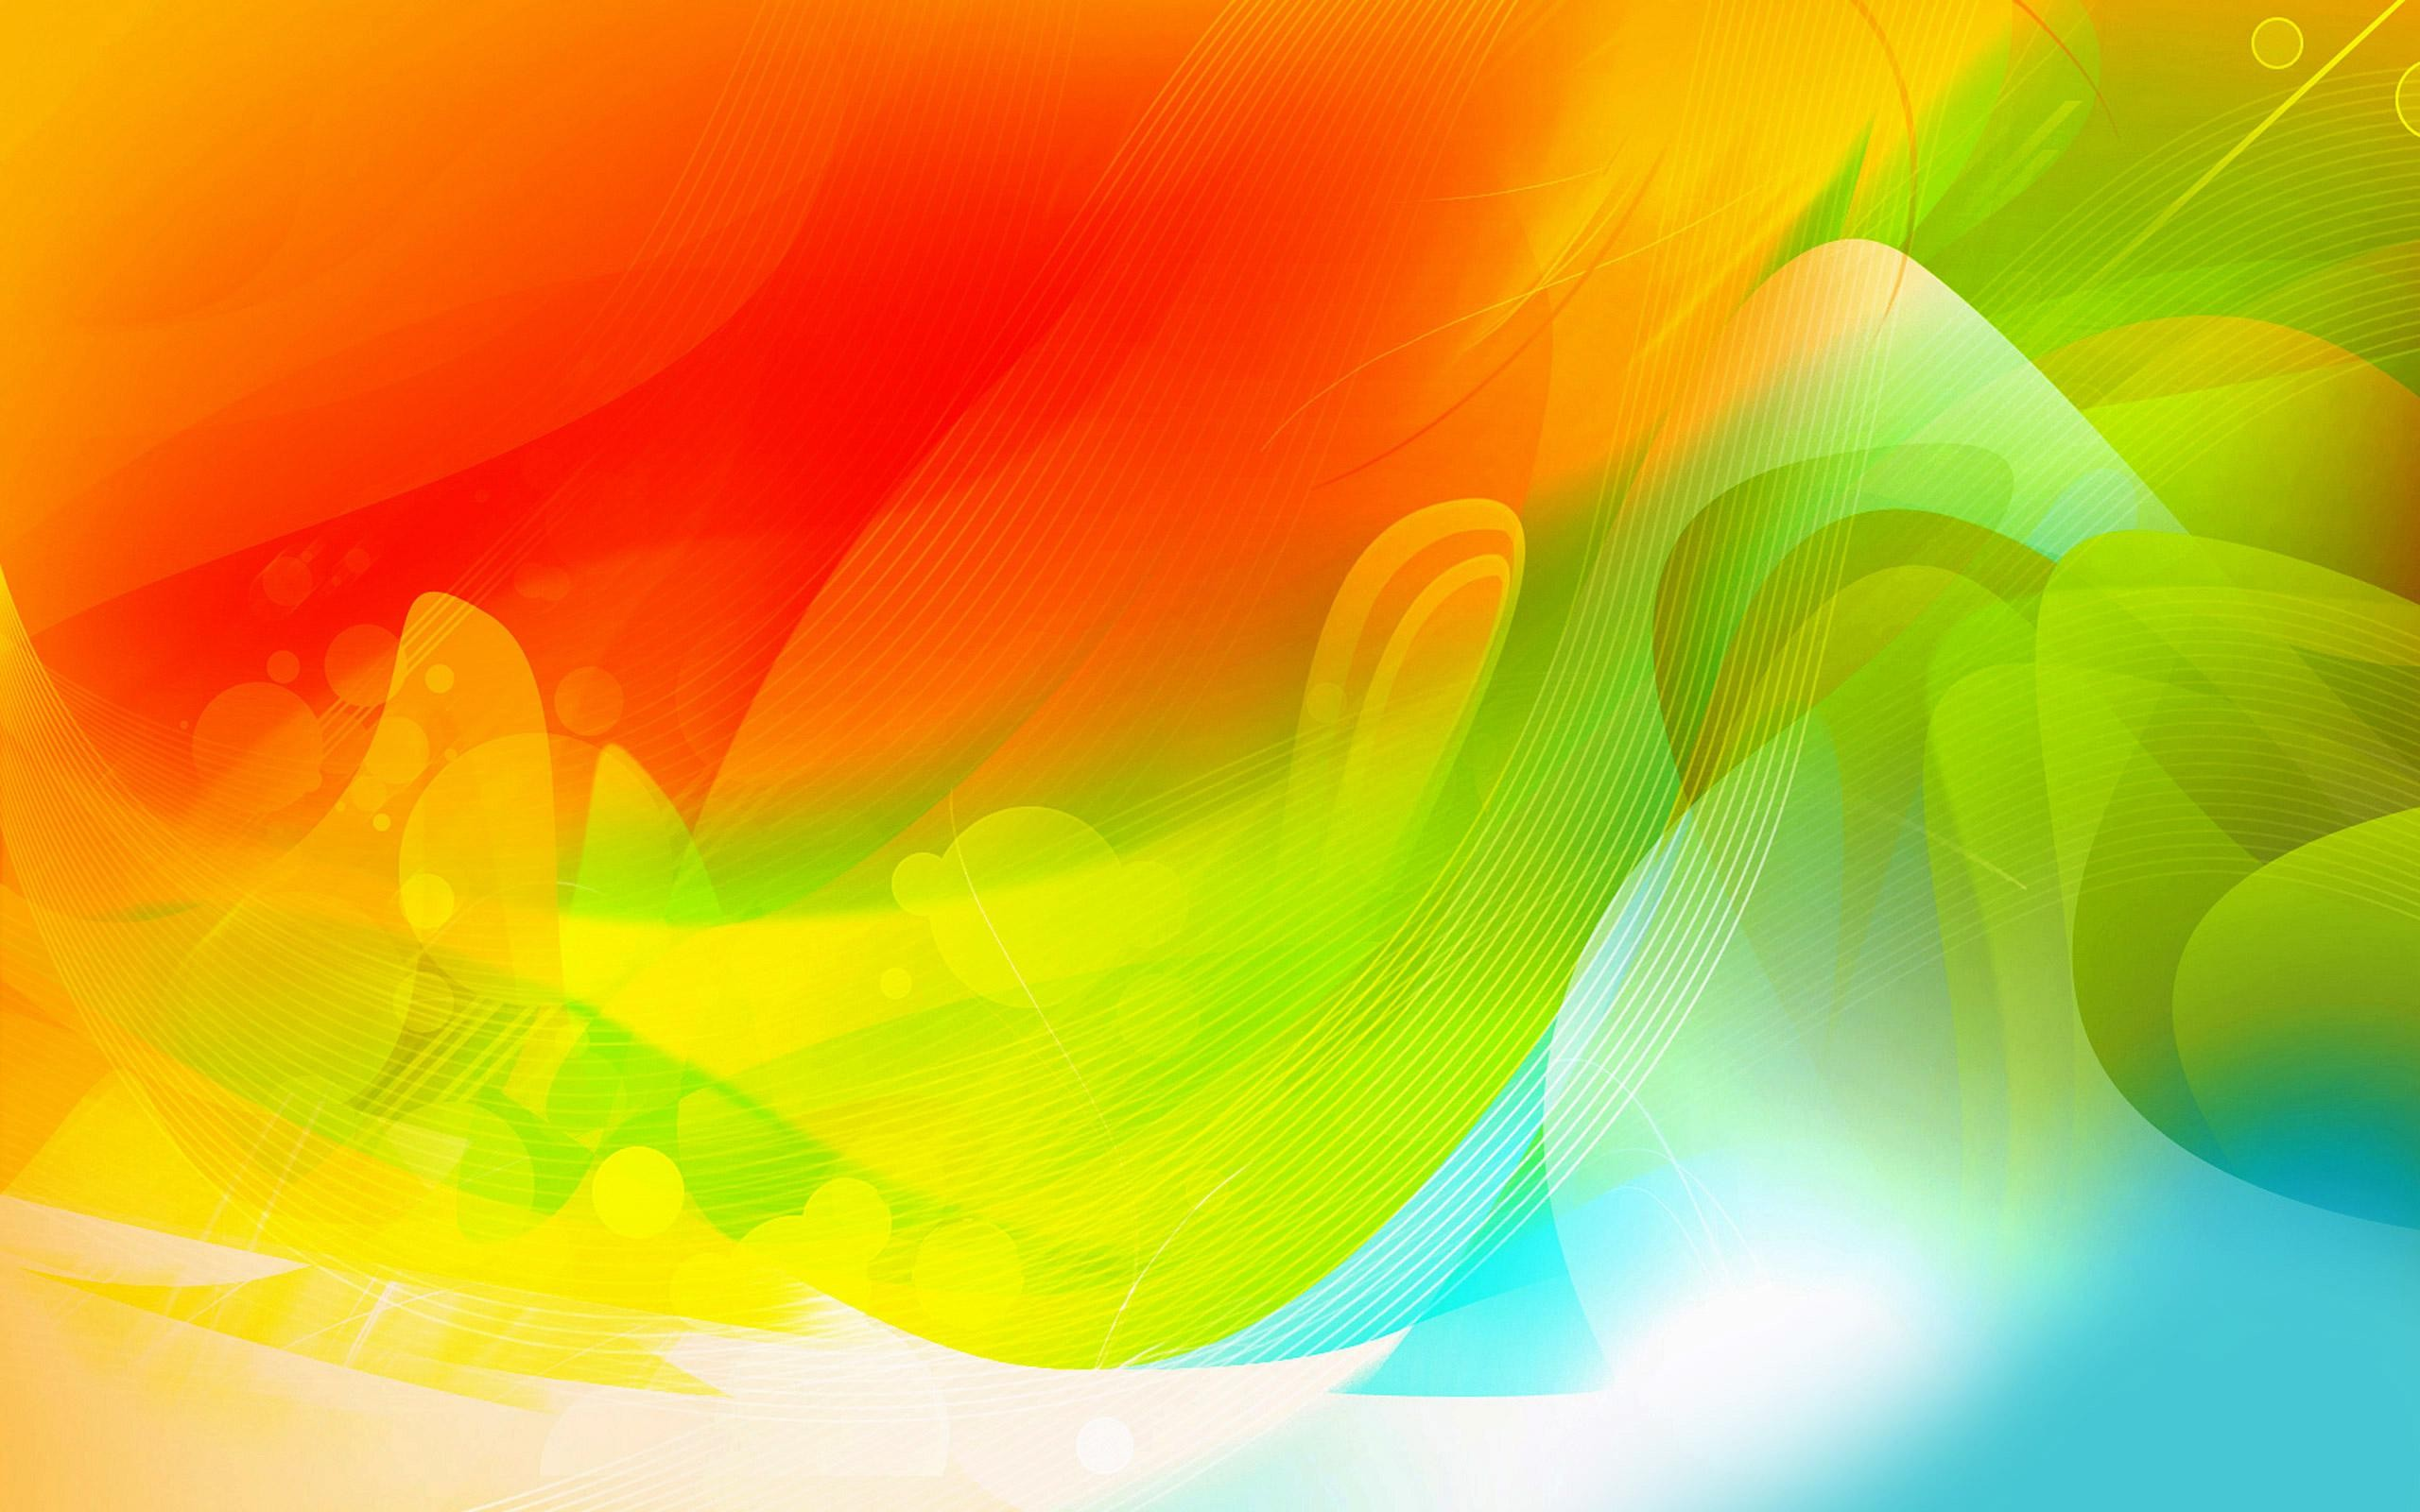 Free Download Colorful Background Wallpaper 1920x1200 65923 2560x1600 For Your Desktop Mobile Tablet Explore 75 Pics Of Colorful Backgrounds Colorful Wallpaper Images